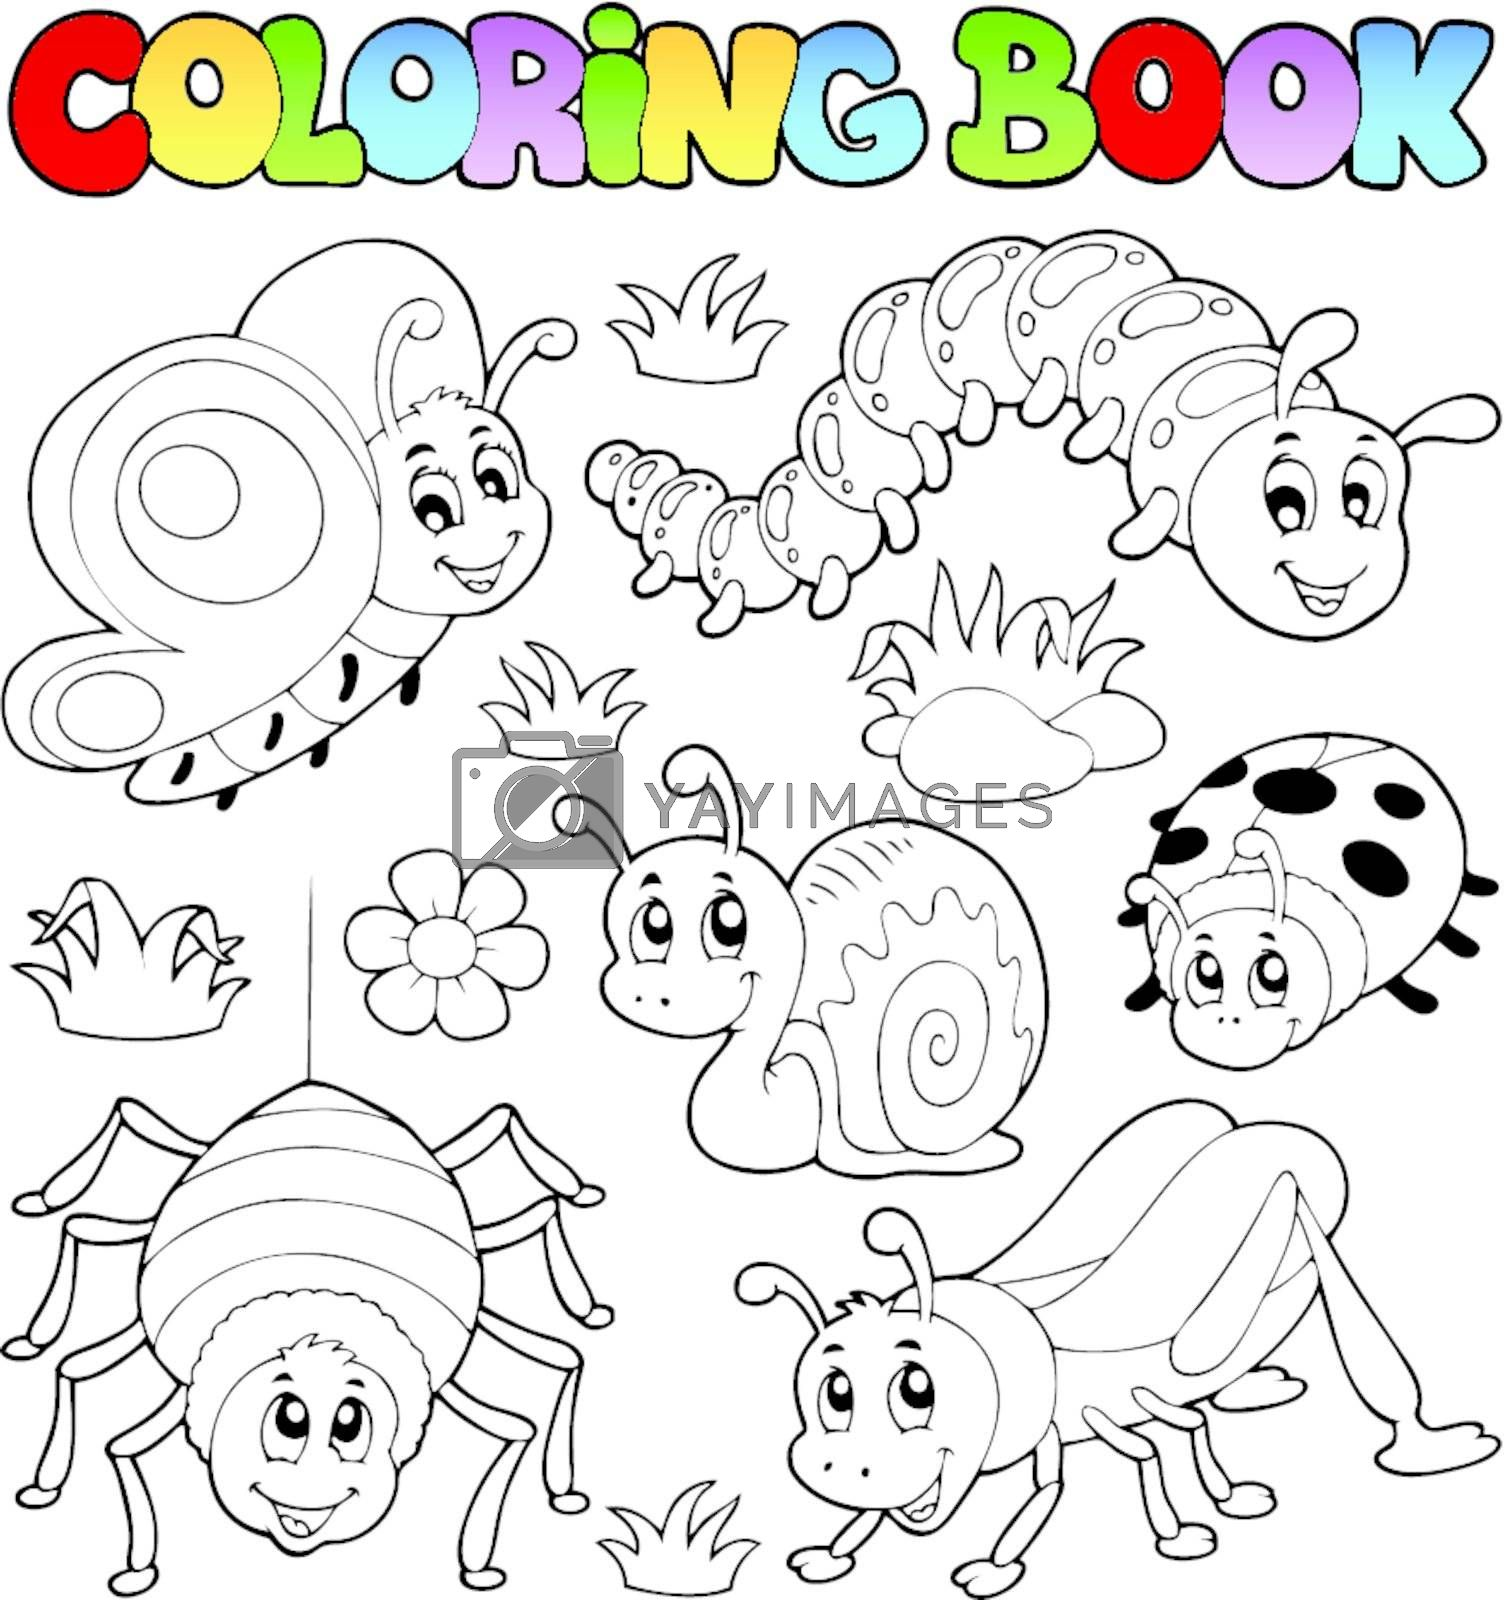 Coloring book cute bugs 1 by clairev